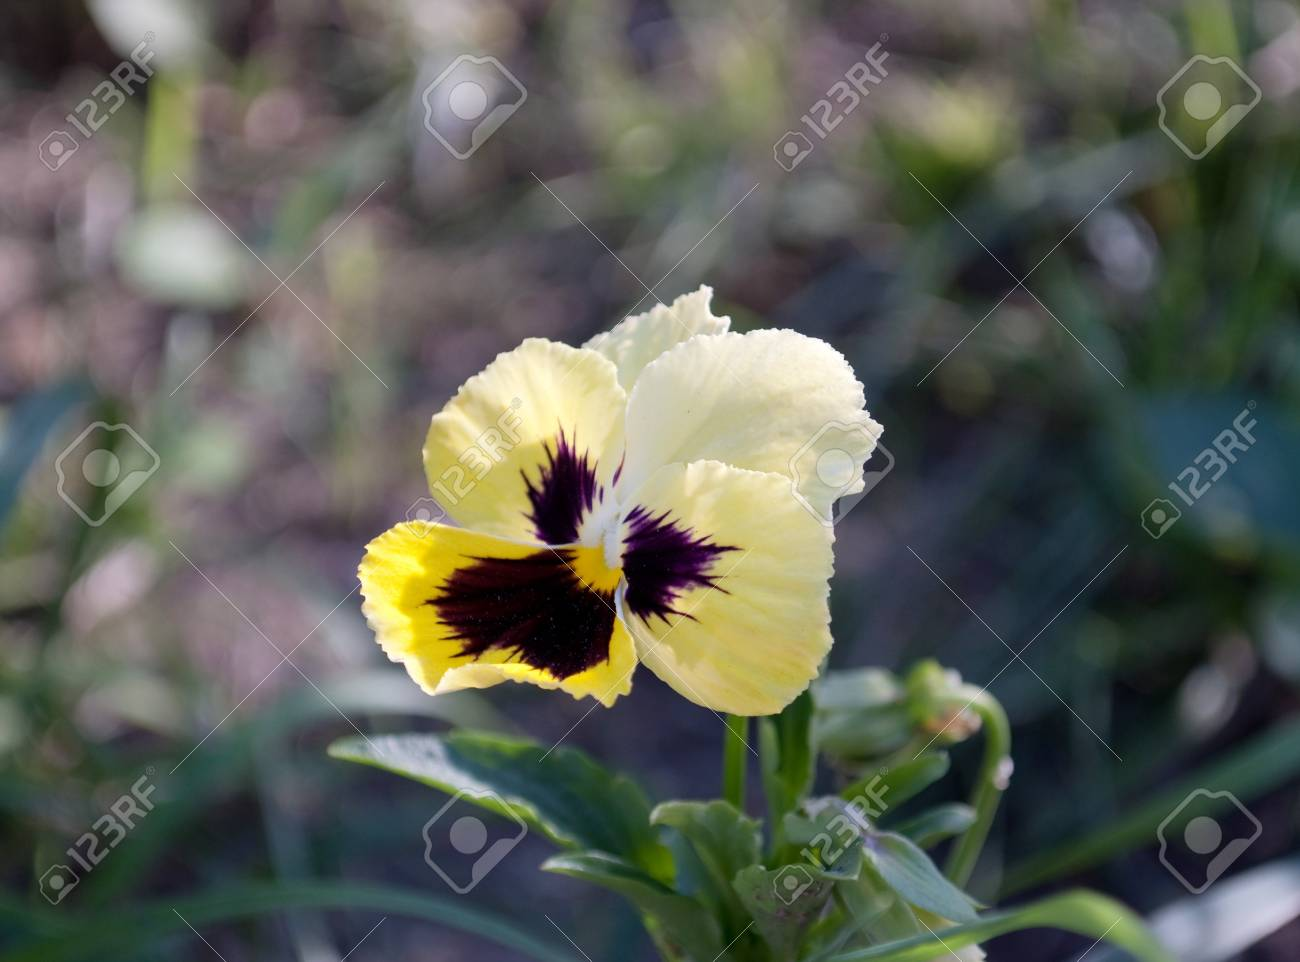 pansy flower in the flower bed Stock Photo - 7302478